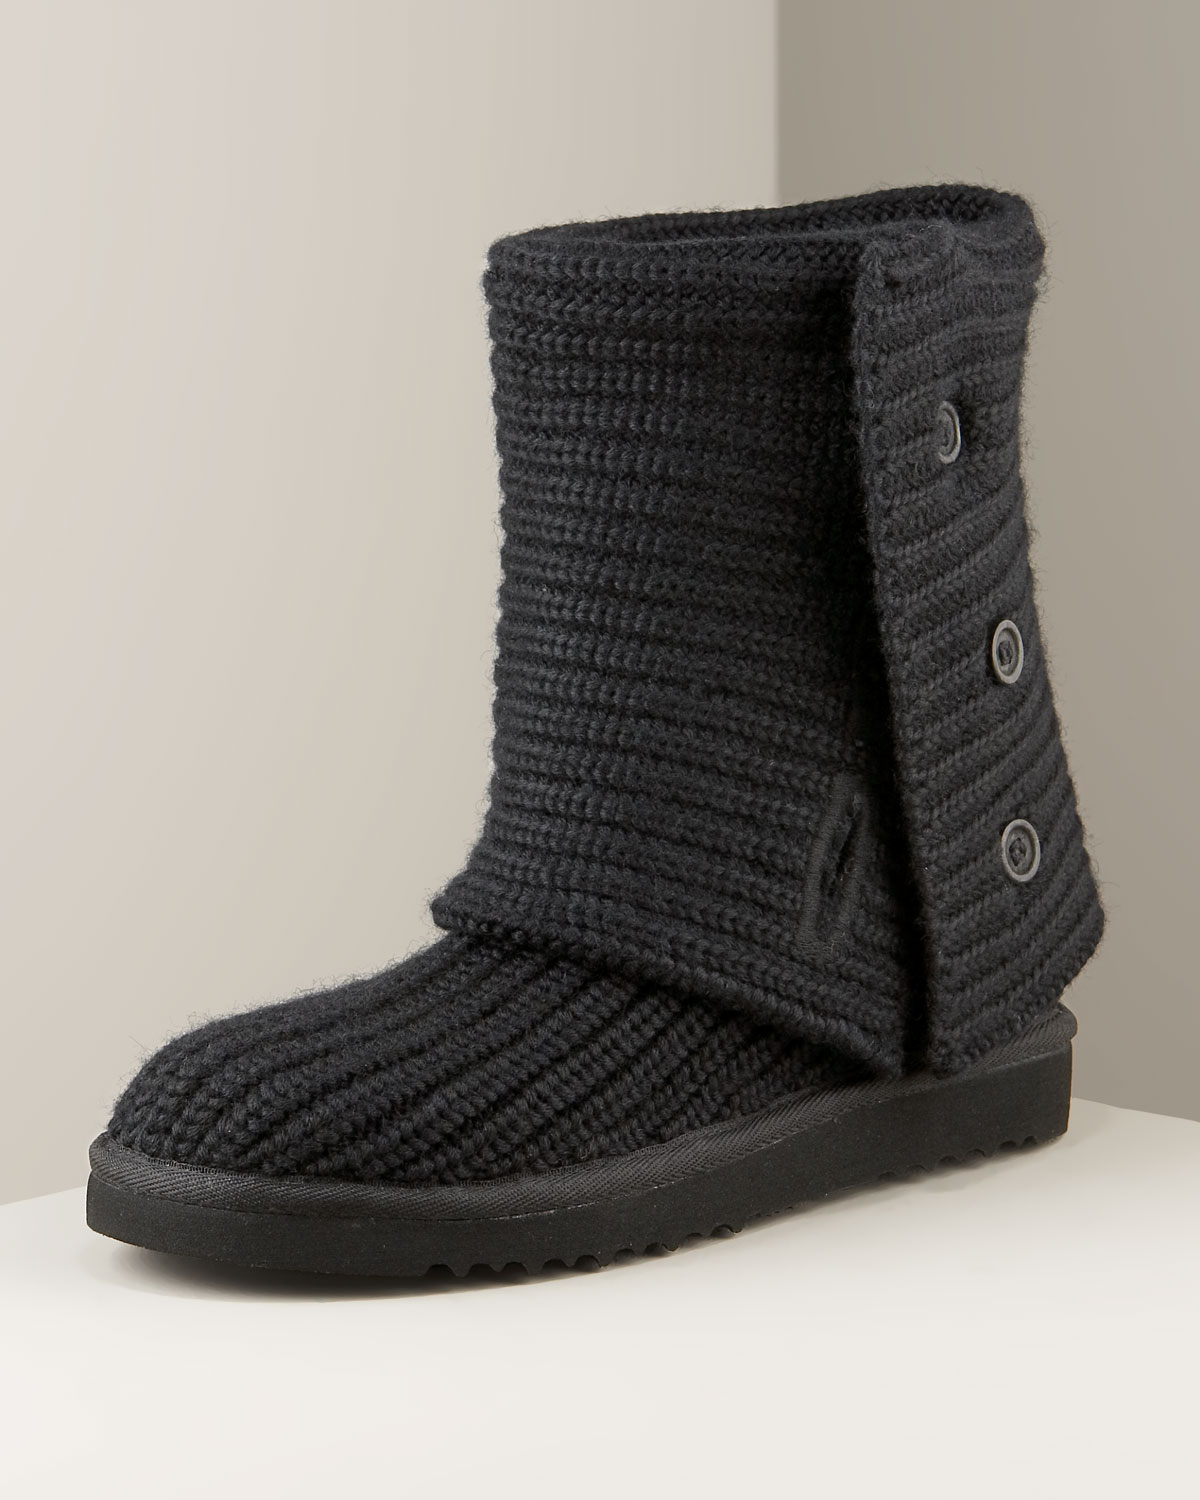 Ugg Crocheted Ankle Boots in Black Lyst